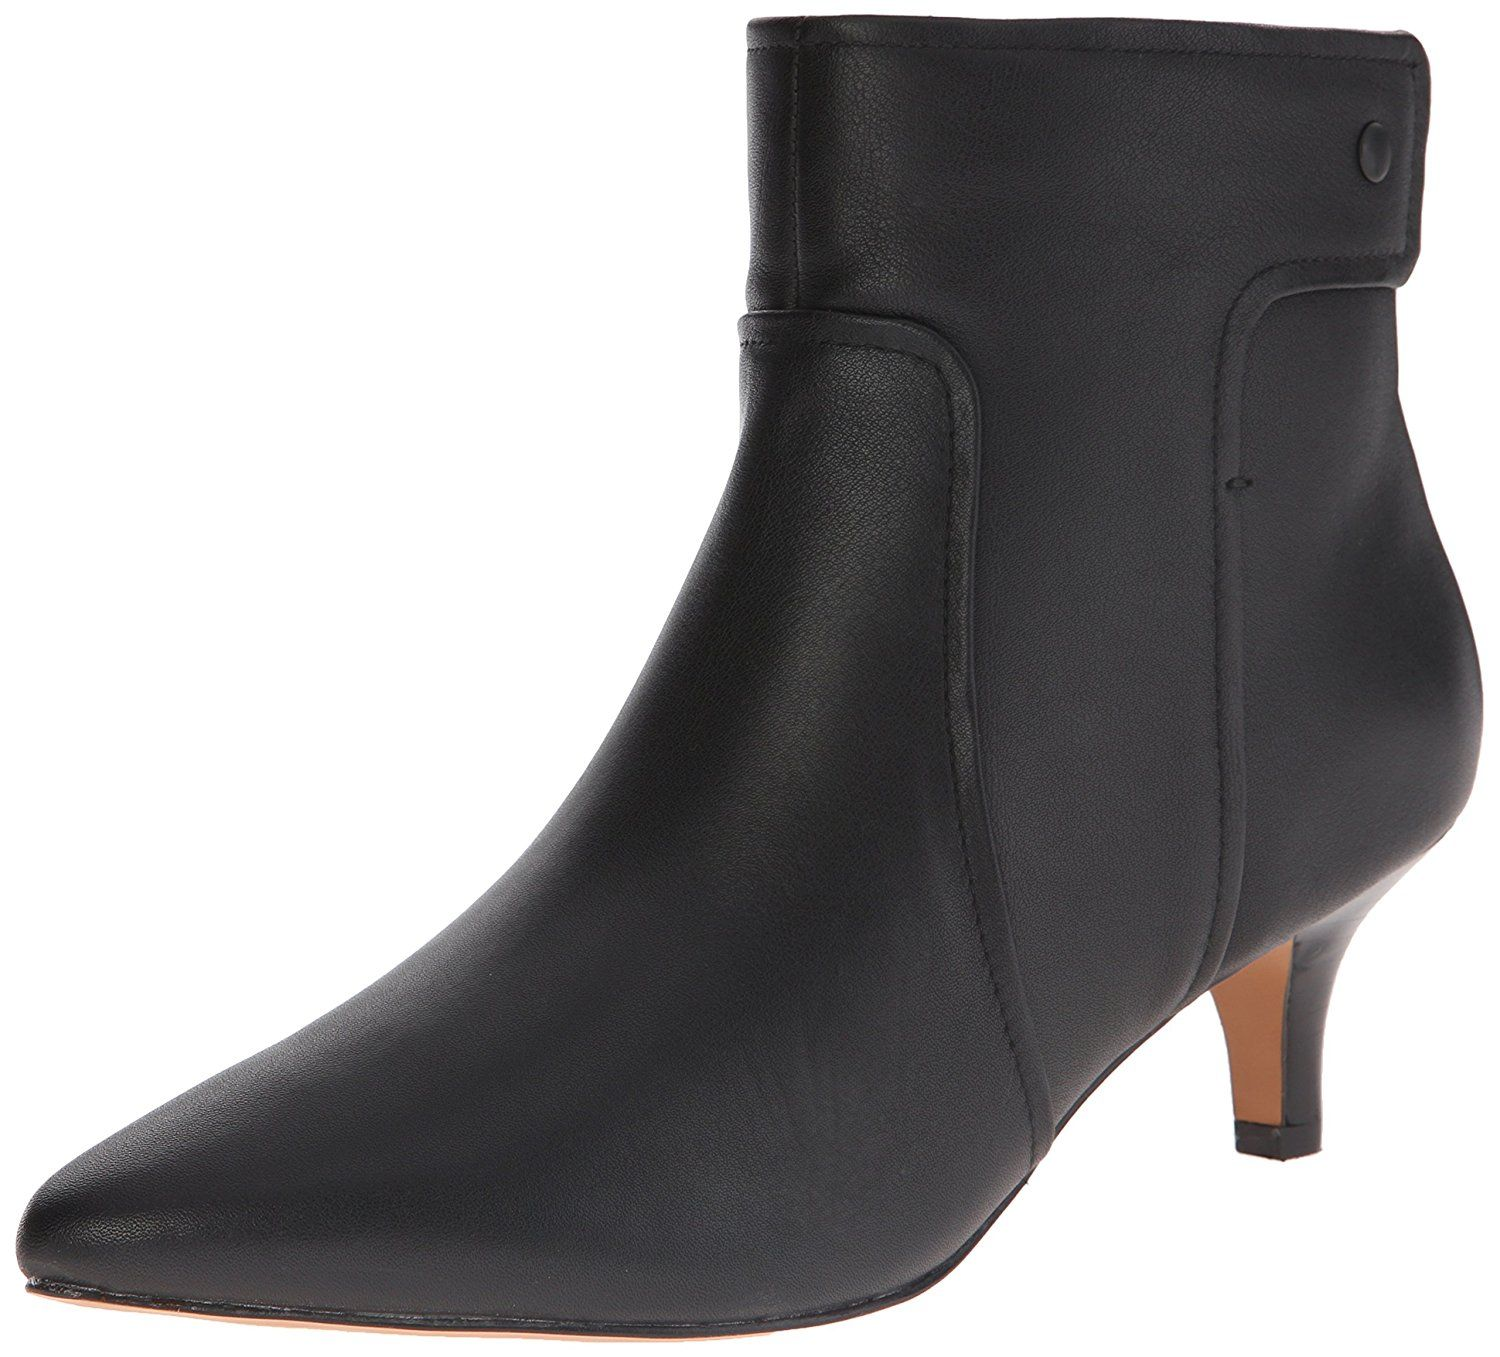 Clarks Women's Sage Aria Boot, Black Leather, M US ** You can get  additional details at the image link.